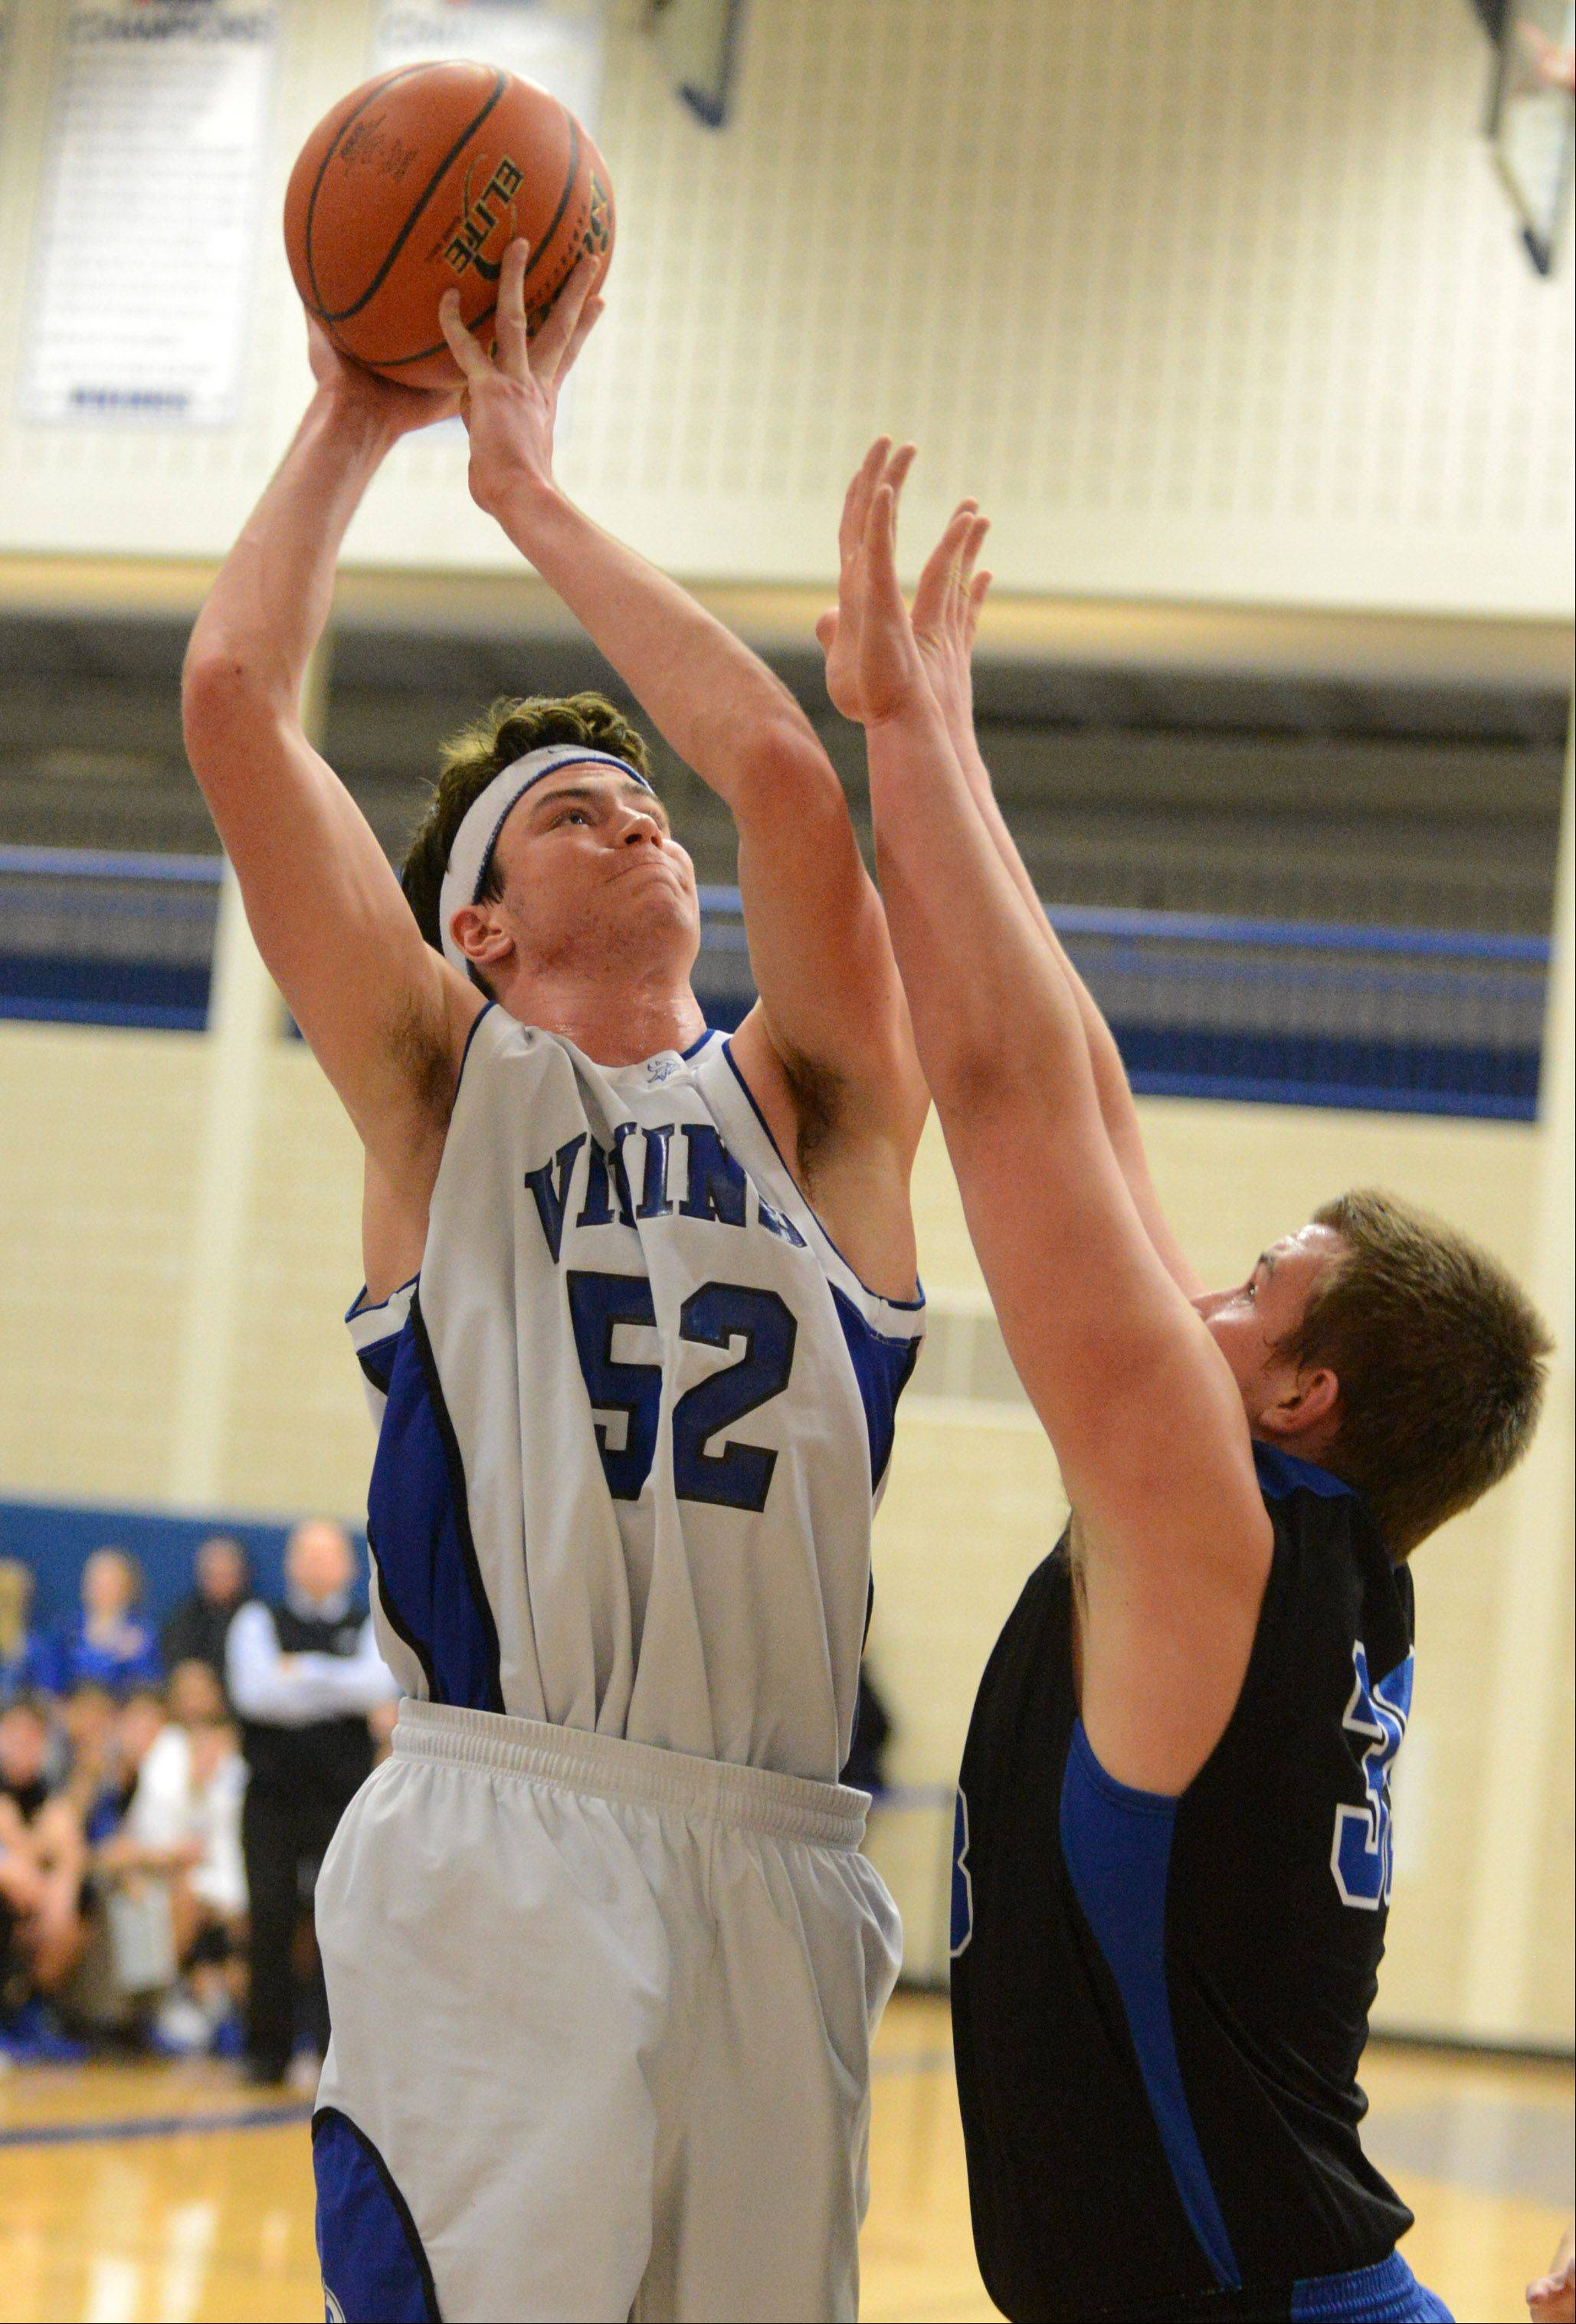 Images from the St. Charles North vs. Geneva boys basketball game Friday, January 10, 2014.